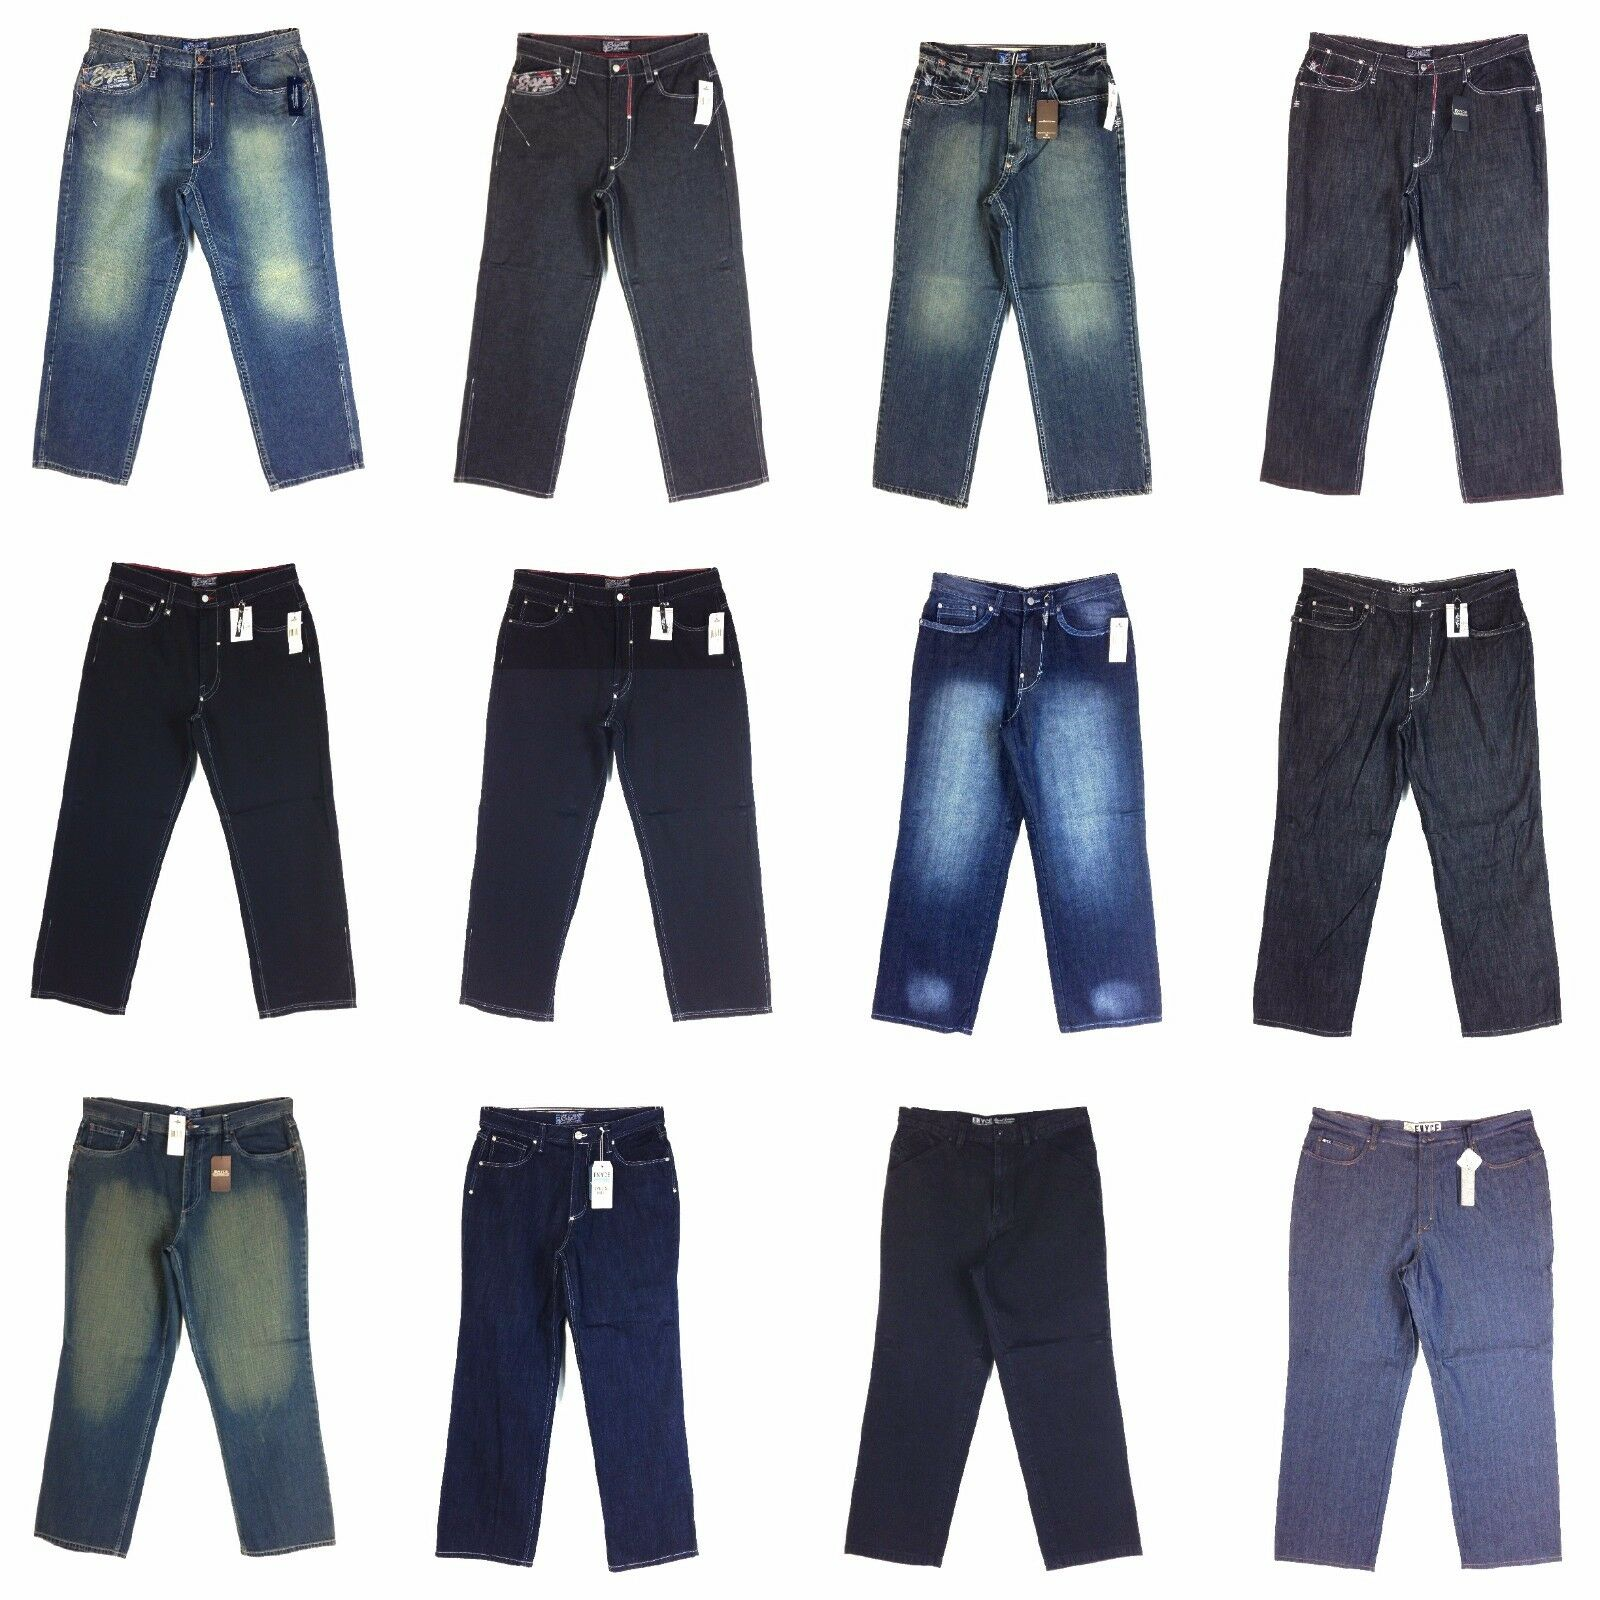 Vintage Enyce Design Men's New Jean, Old school Baggy Styles Assorted, Group [7]